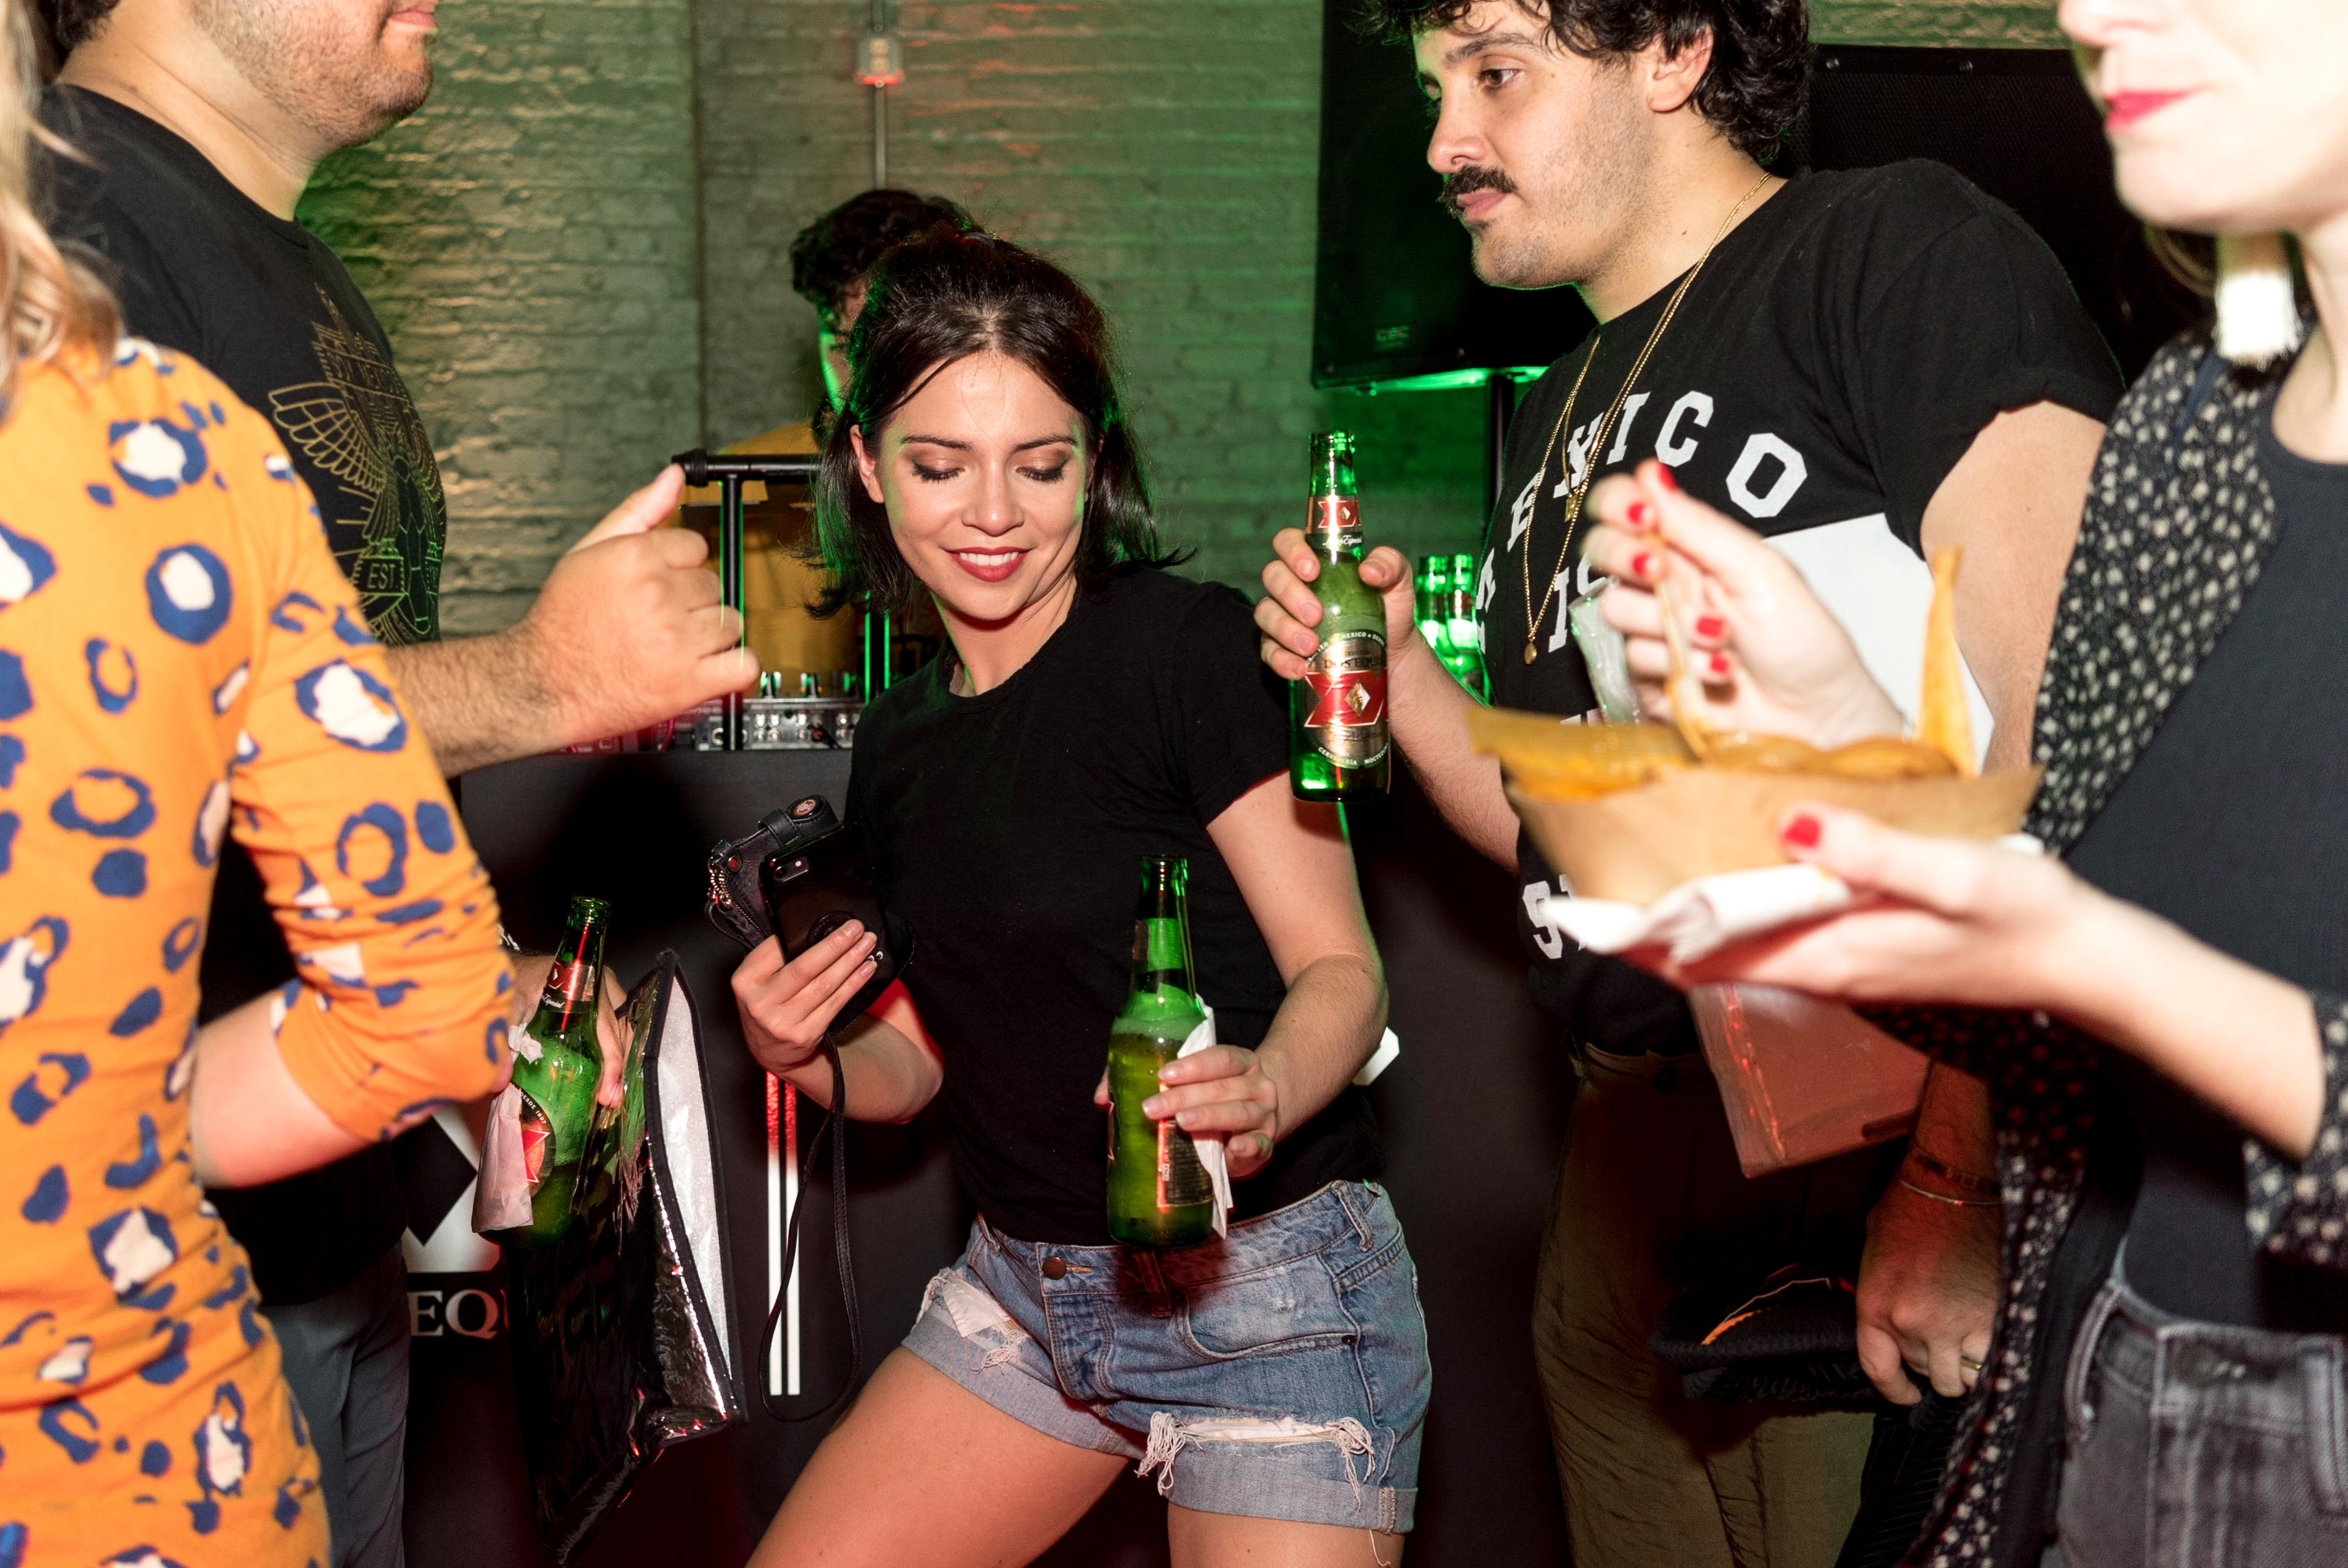 37 Photos From the 'Mexico is the Shit' & Dos Equis Pop-Up Shop and Celebration